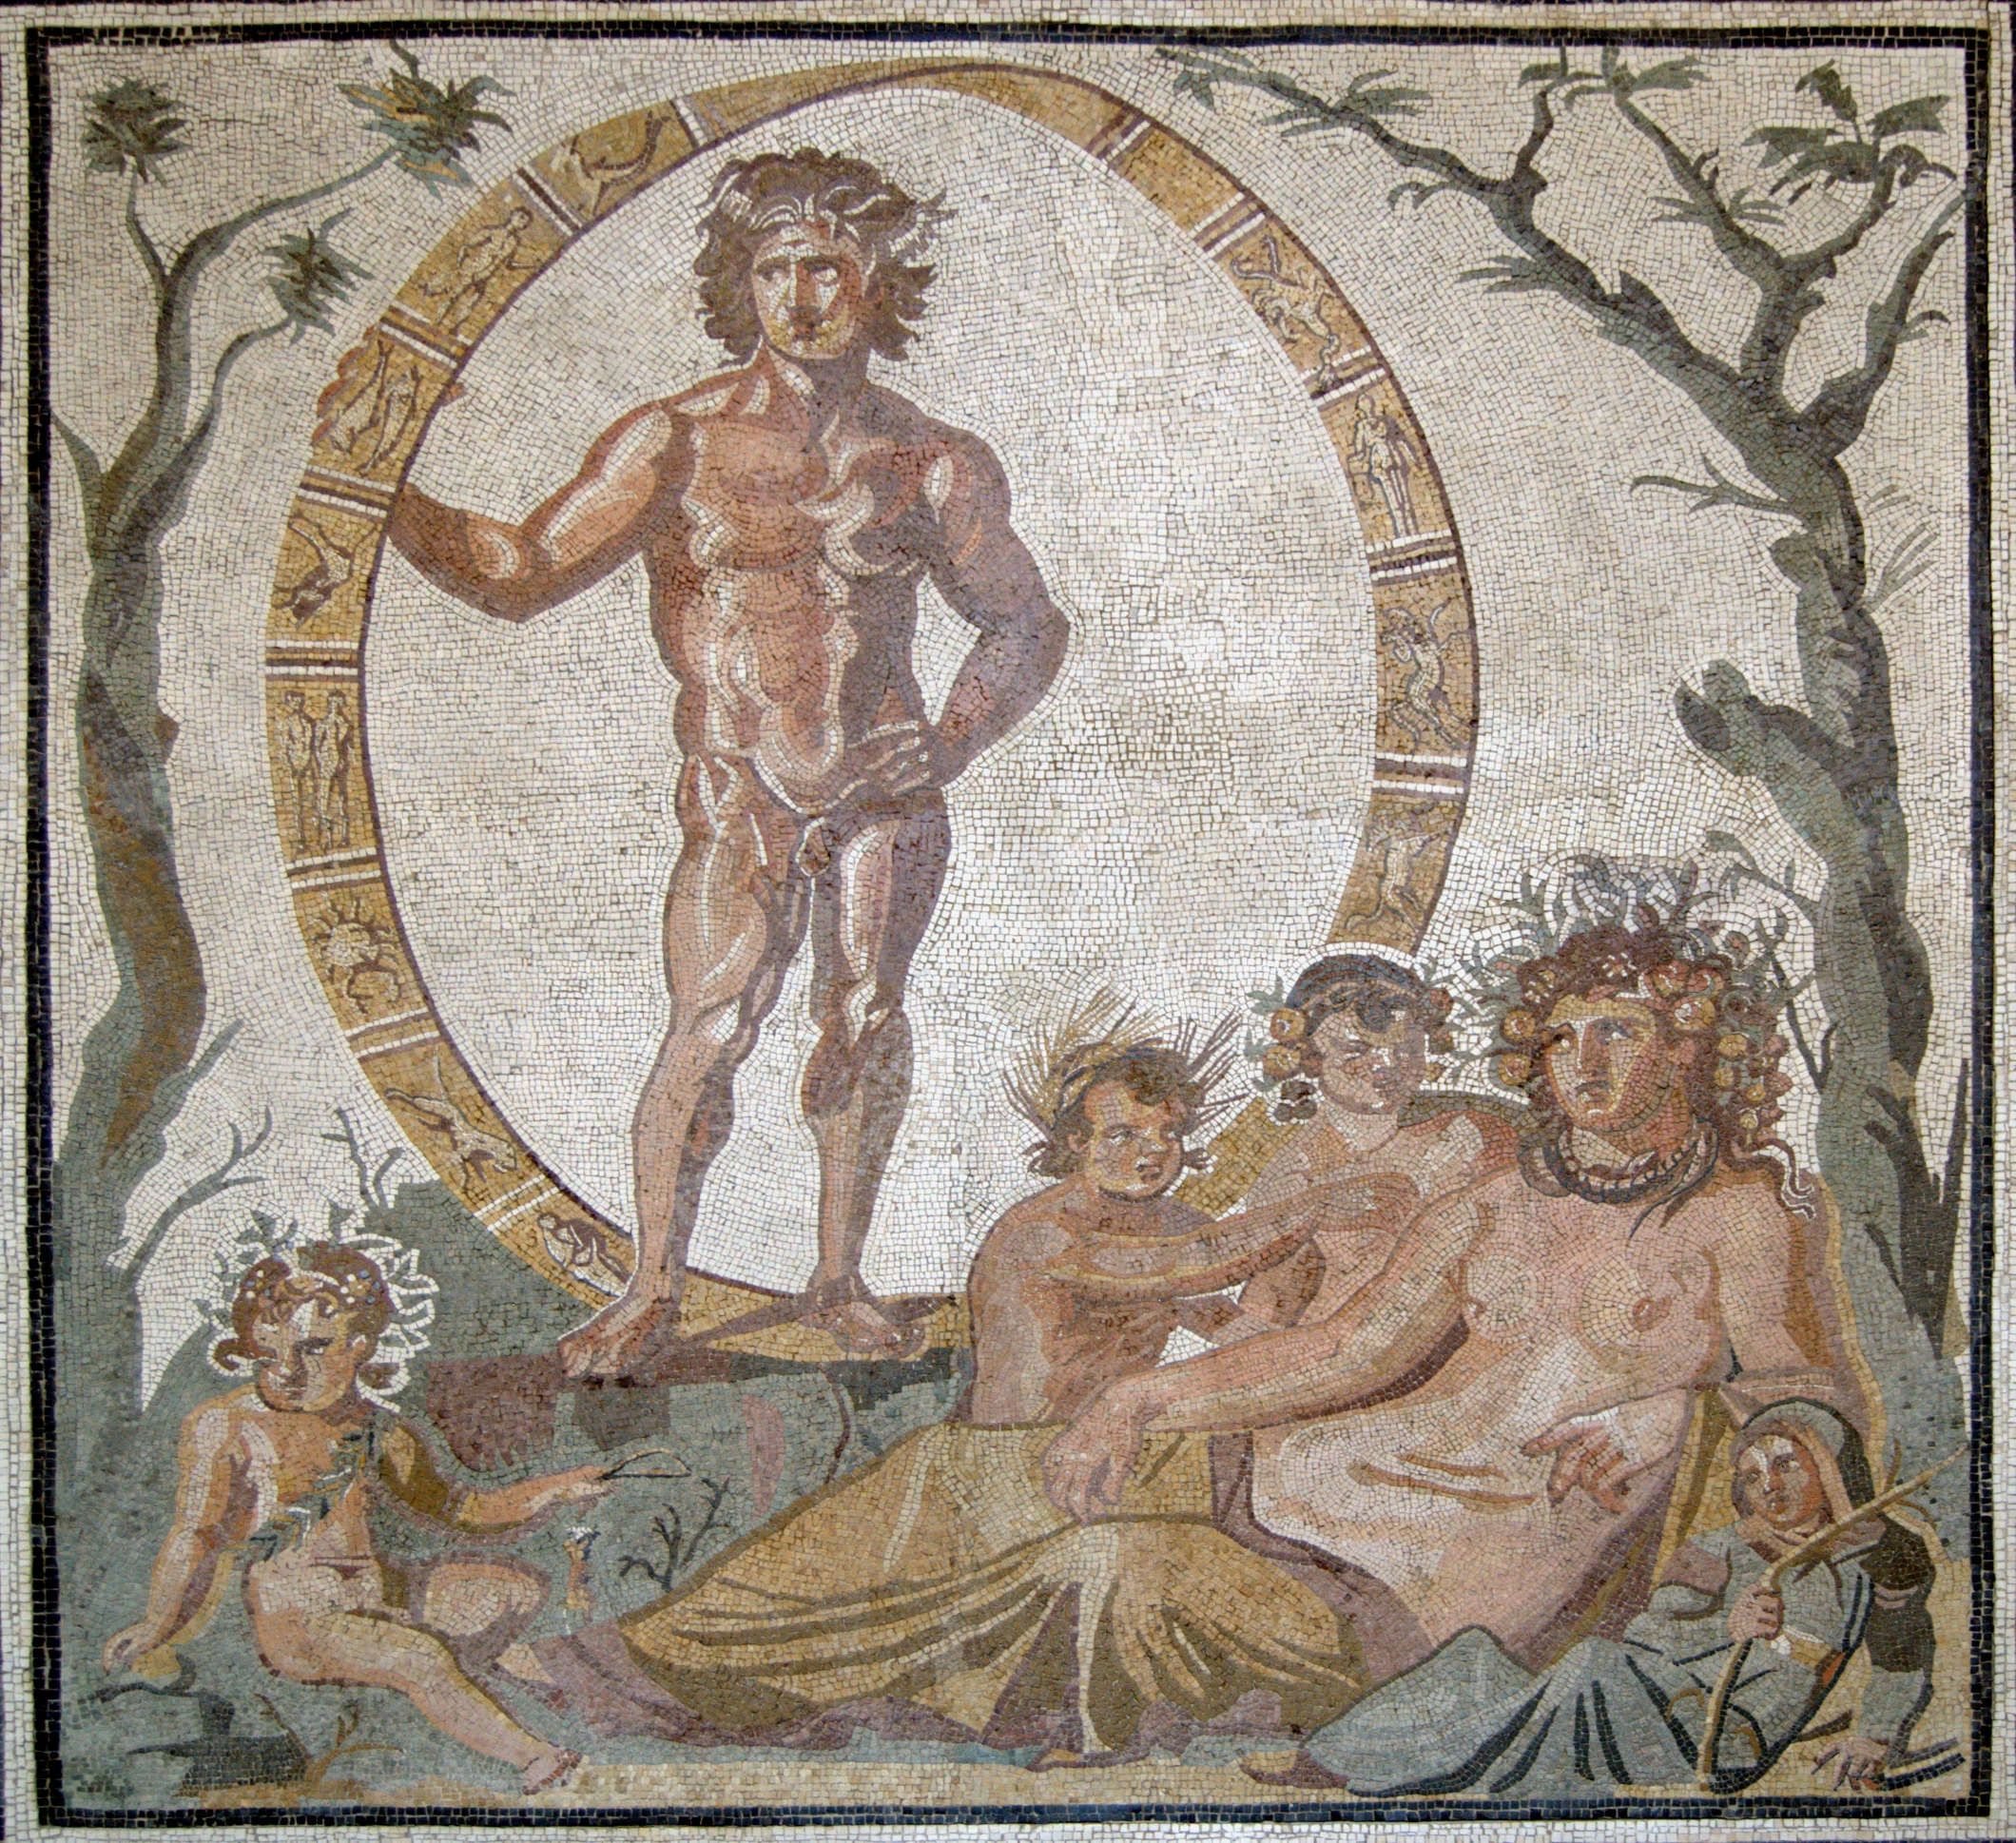 http://upload.wikimedia.org/wikipedia/commons/4/4e/Aion_mosaic_Glyptothek_Munich_W504.jpg